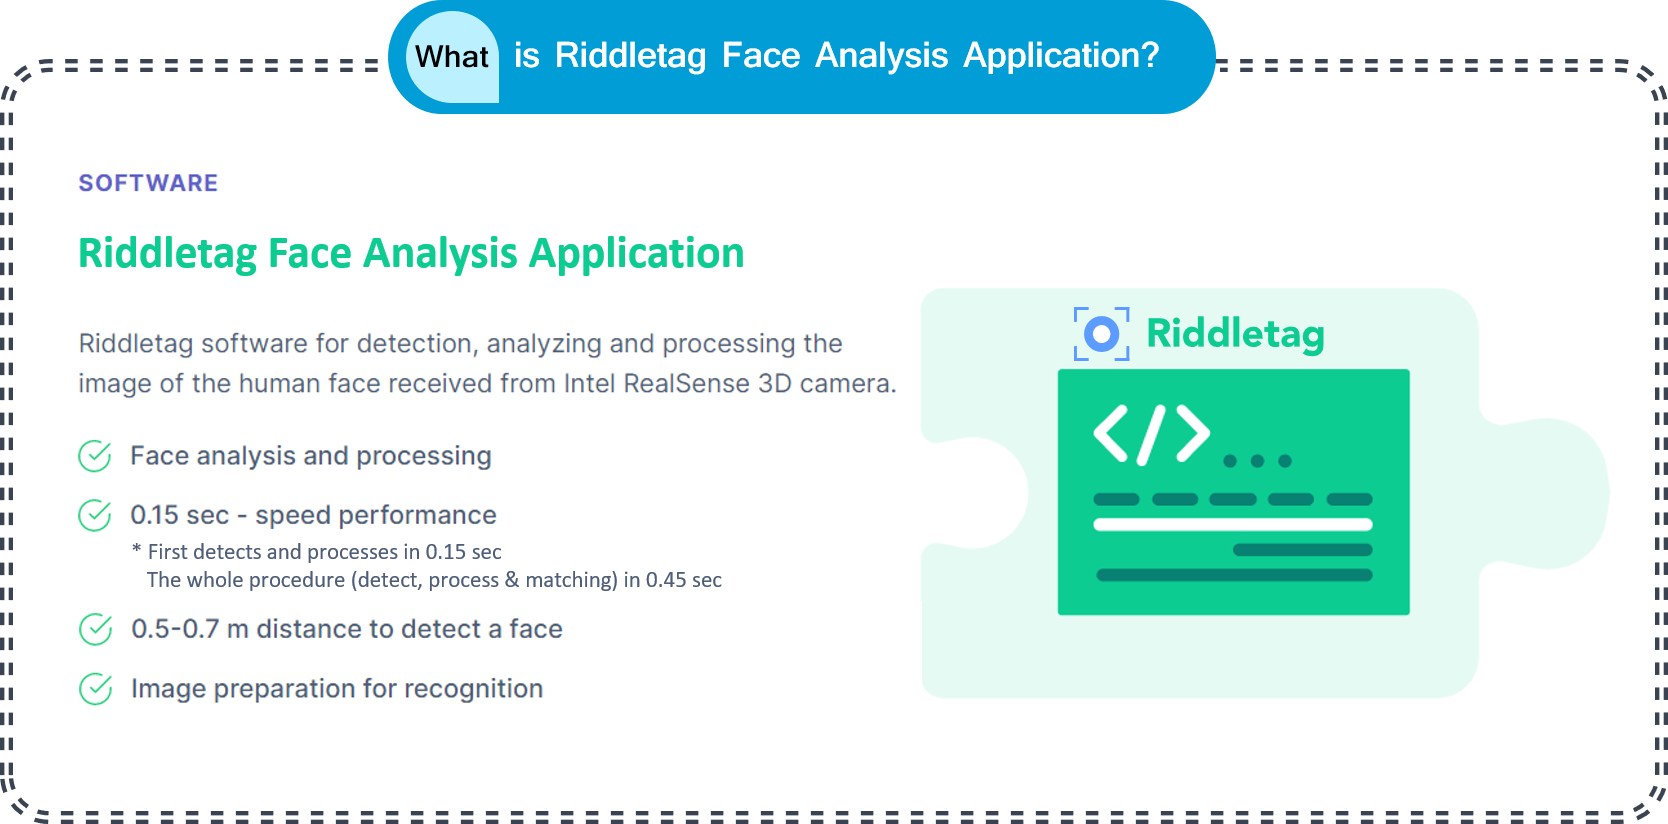 Riddletag_what_is_its_software